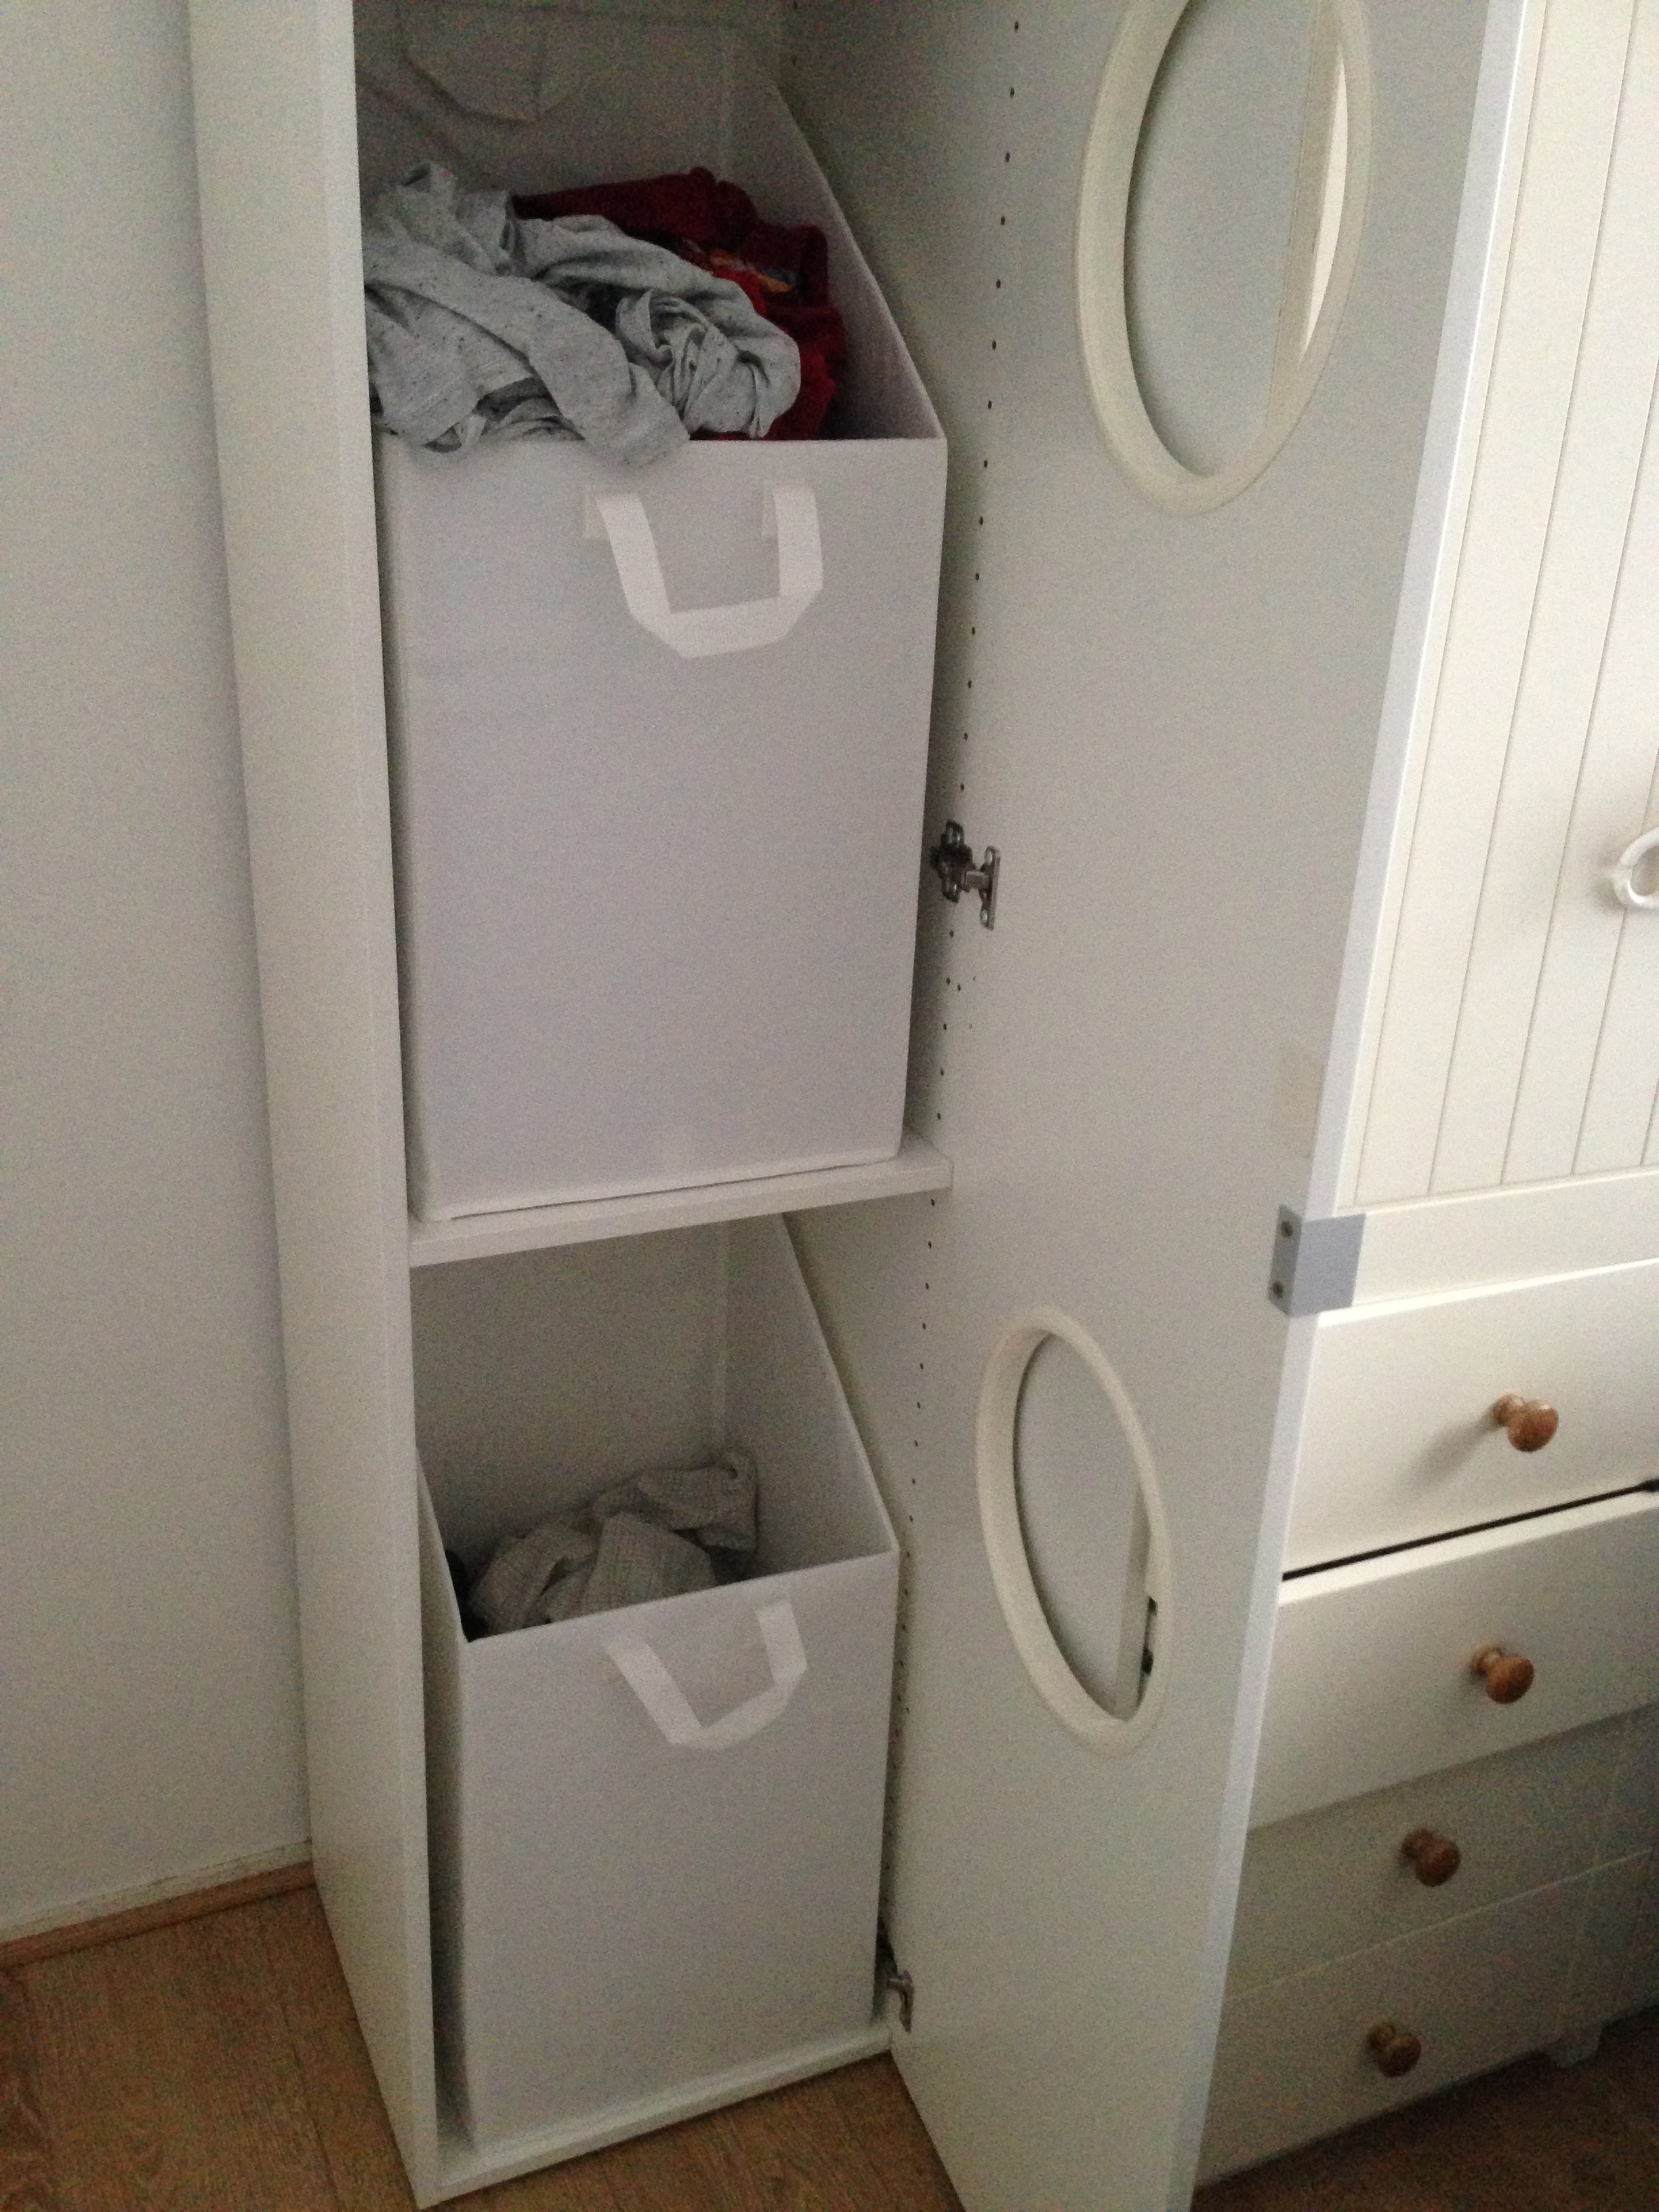 la trouvaille ikea de right un meuble linge sale ludique pmgirl